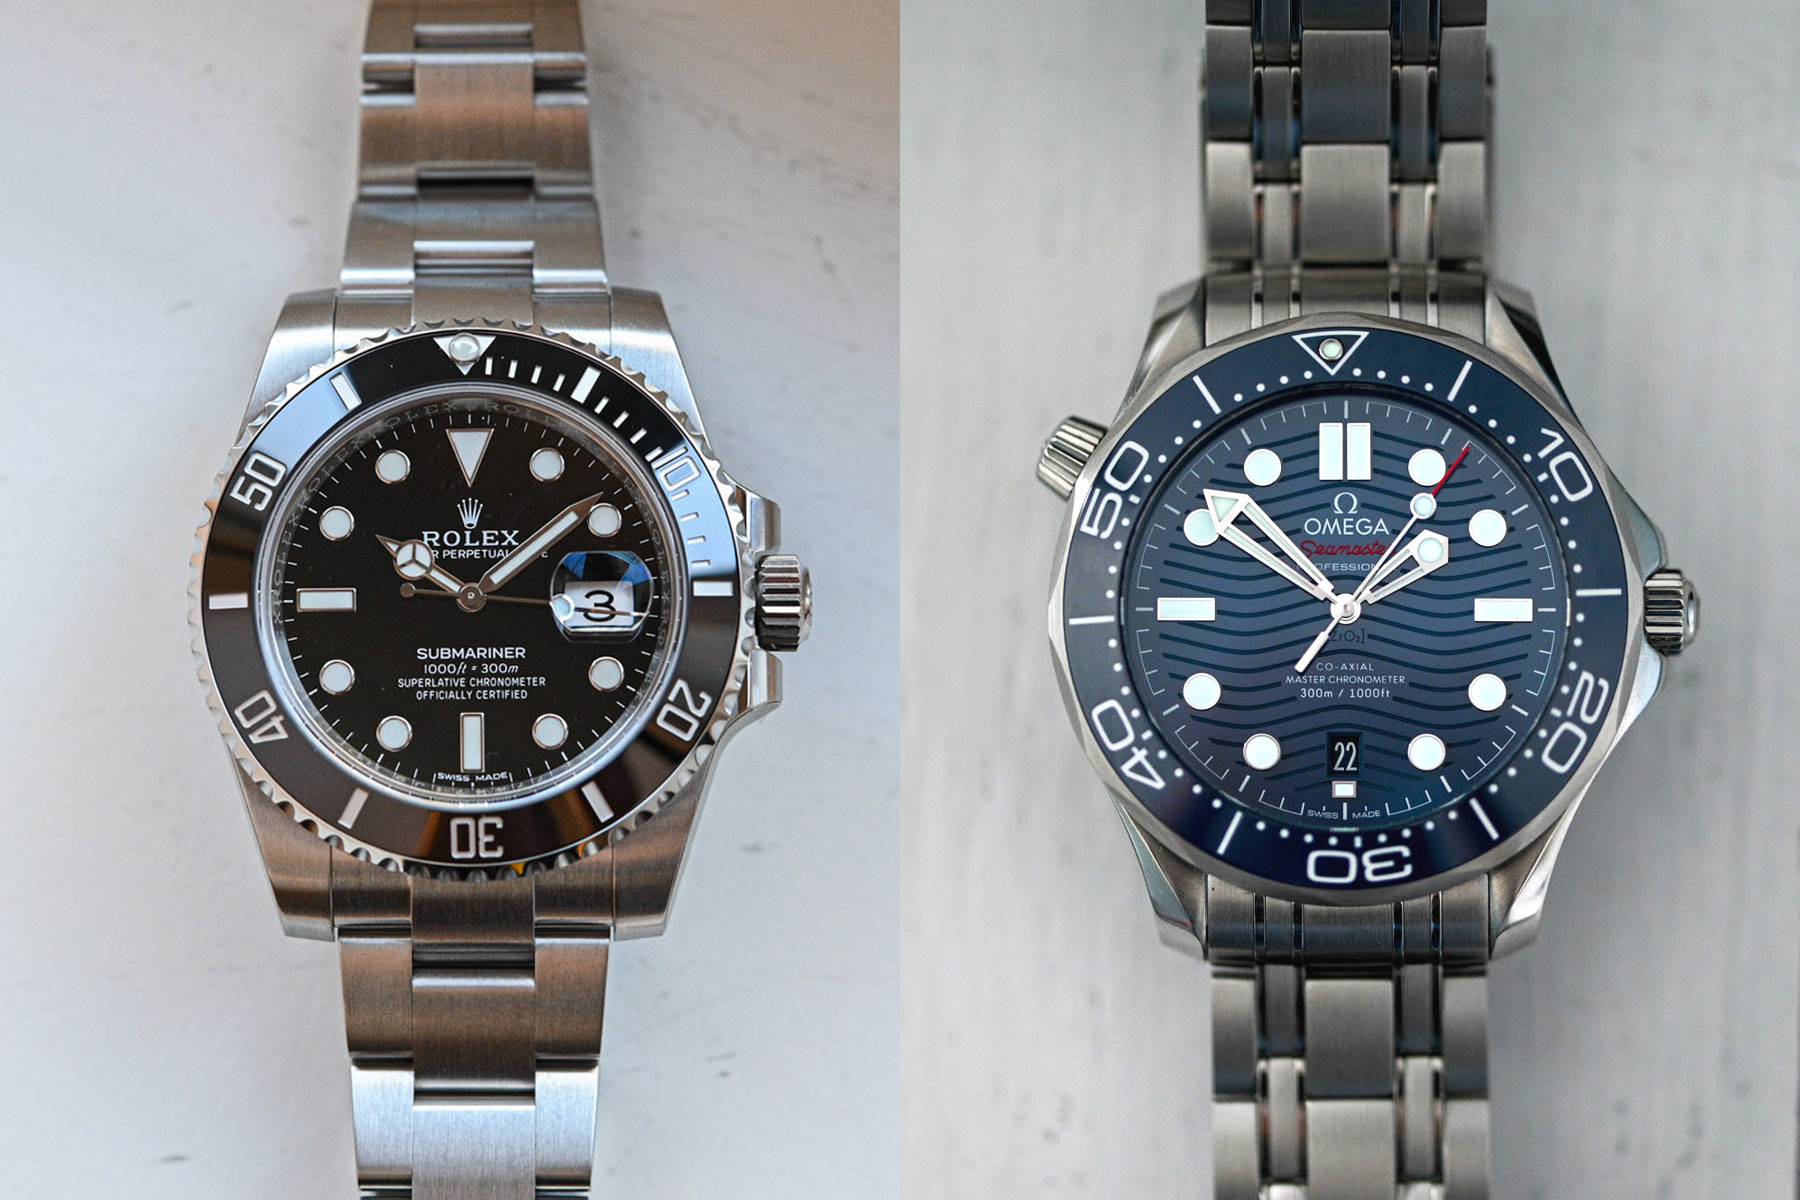 Rolex Submariner Date 116610LN vs Omega Seamaster 300m Diver comparative review